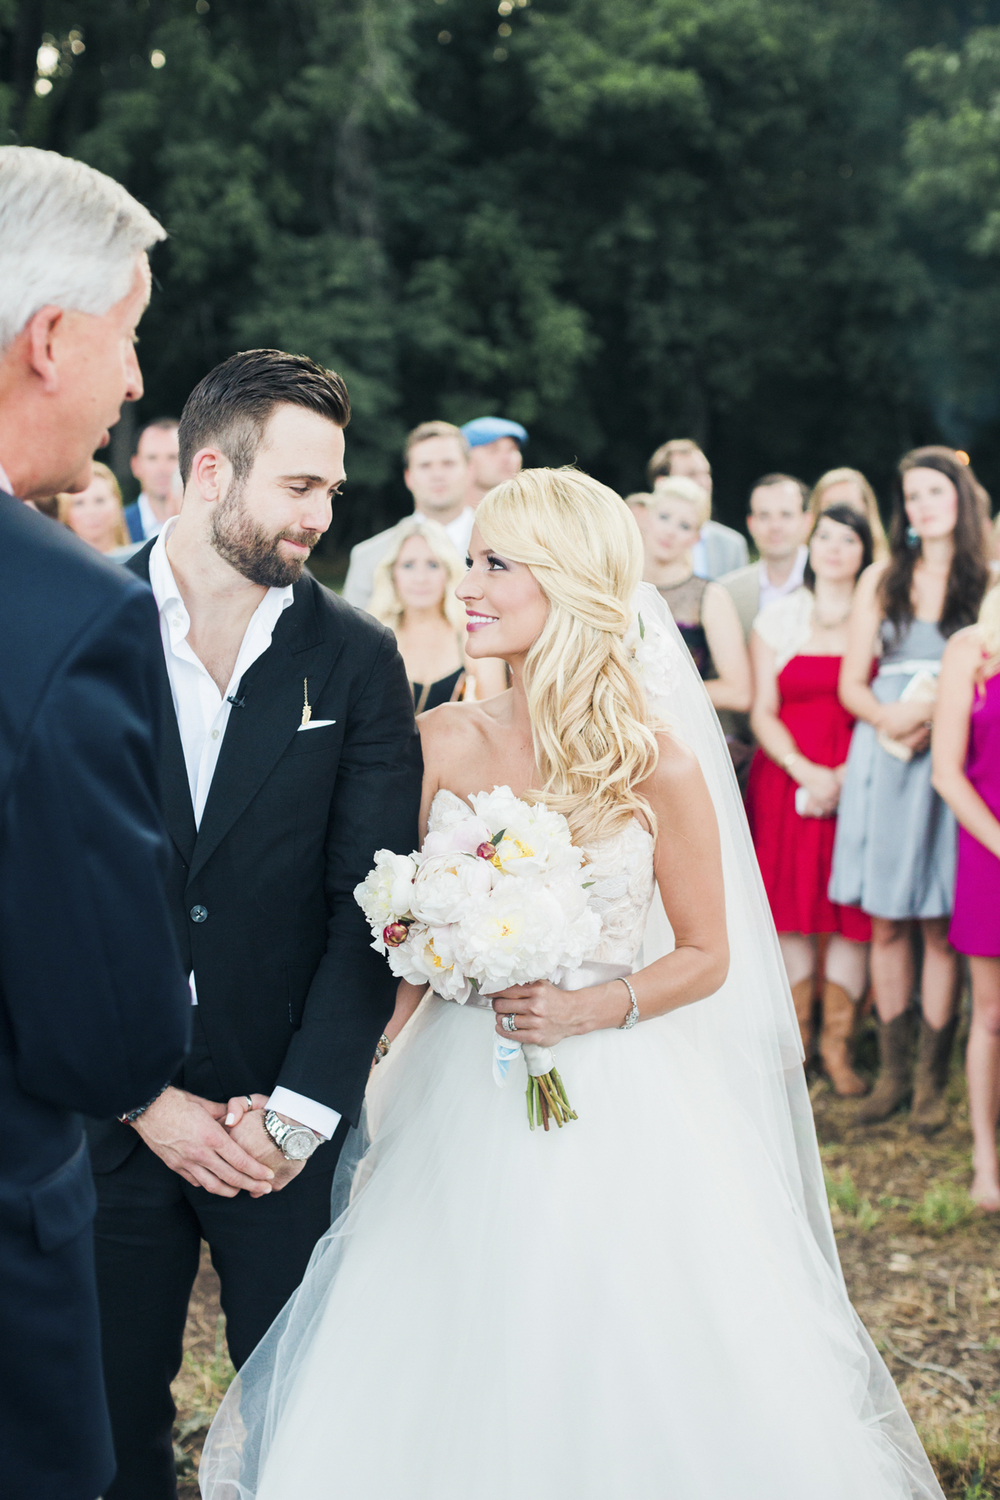 south_carolina_farm_wedding_rustic_chic_surprise_secret_luxe_wedding_bachelorette_emily_maynard_real_weddings-36.jpg